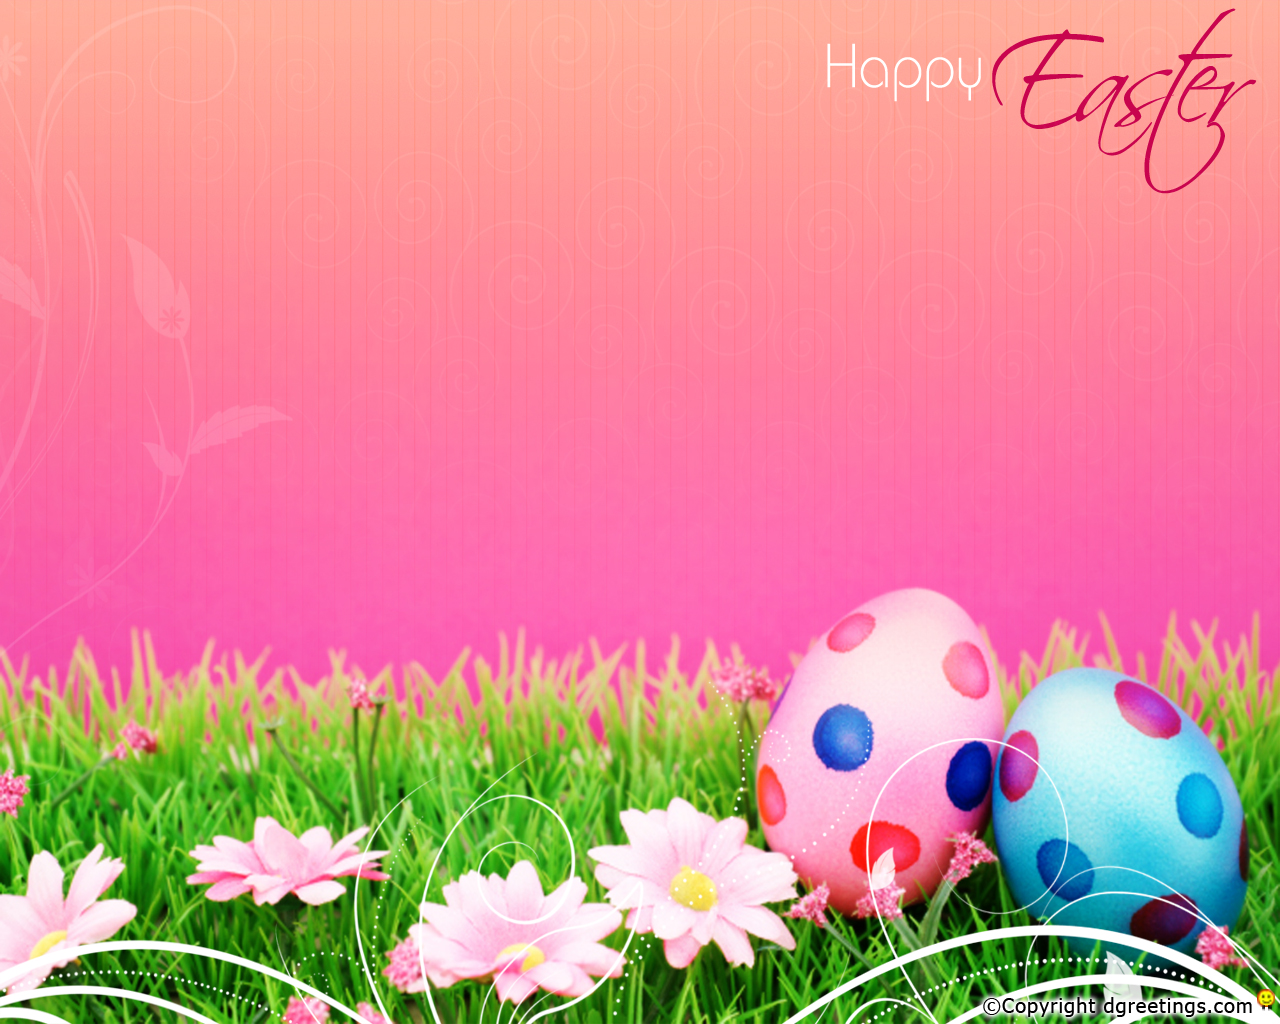 Easter HD Wallpapers  Backgrounds  Wallpaper  1280x1024